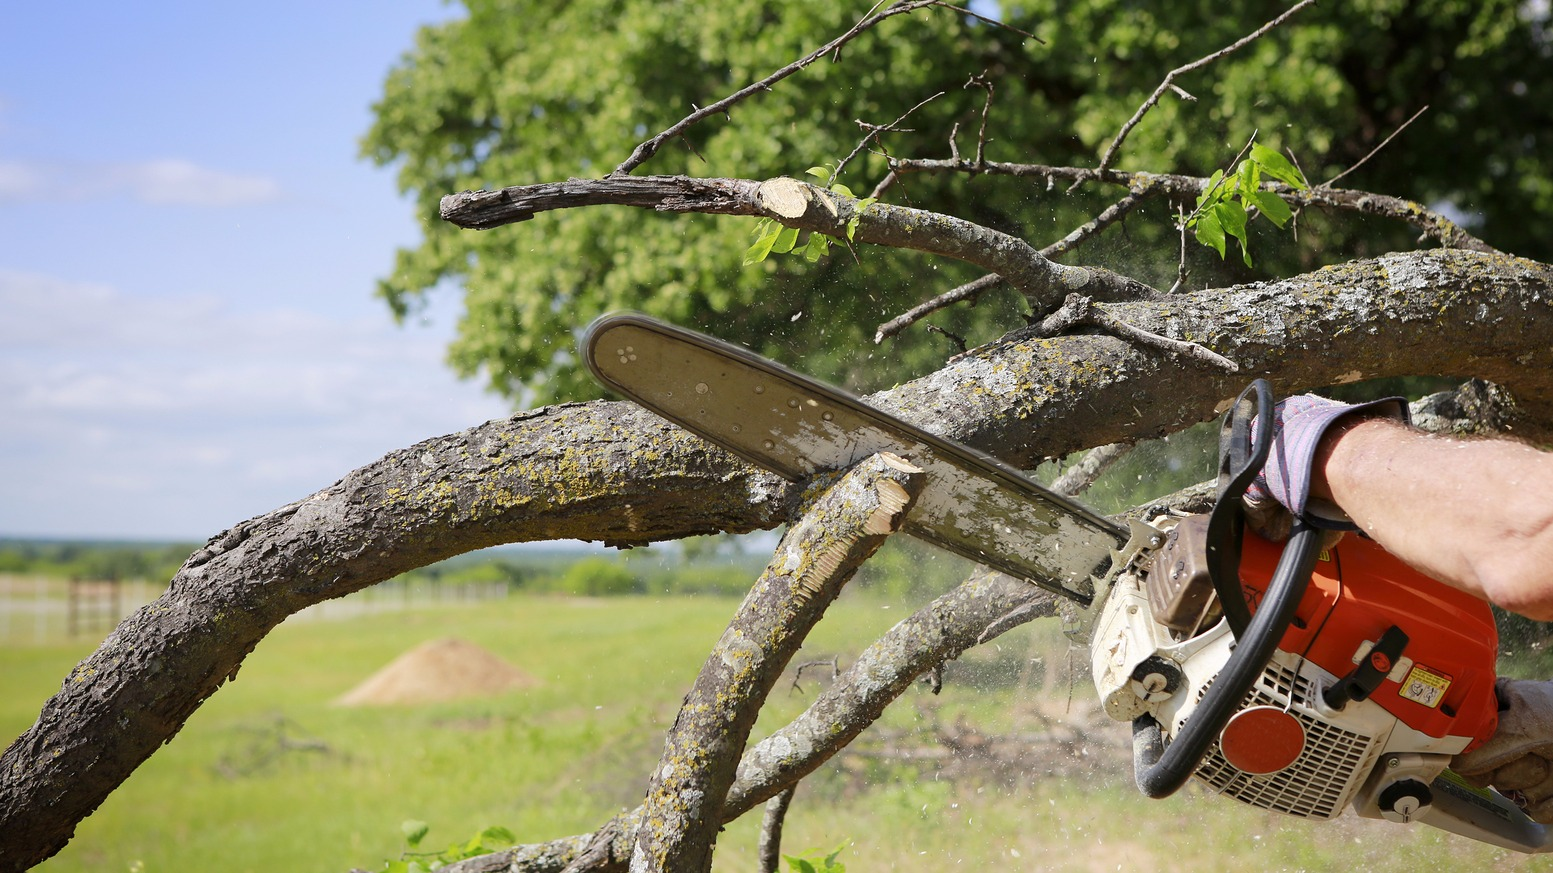 Few Crucial Factors To Keep In Mind While Tree Removal